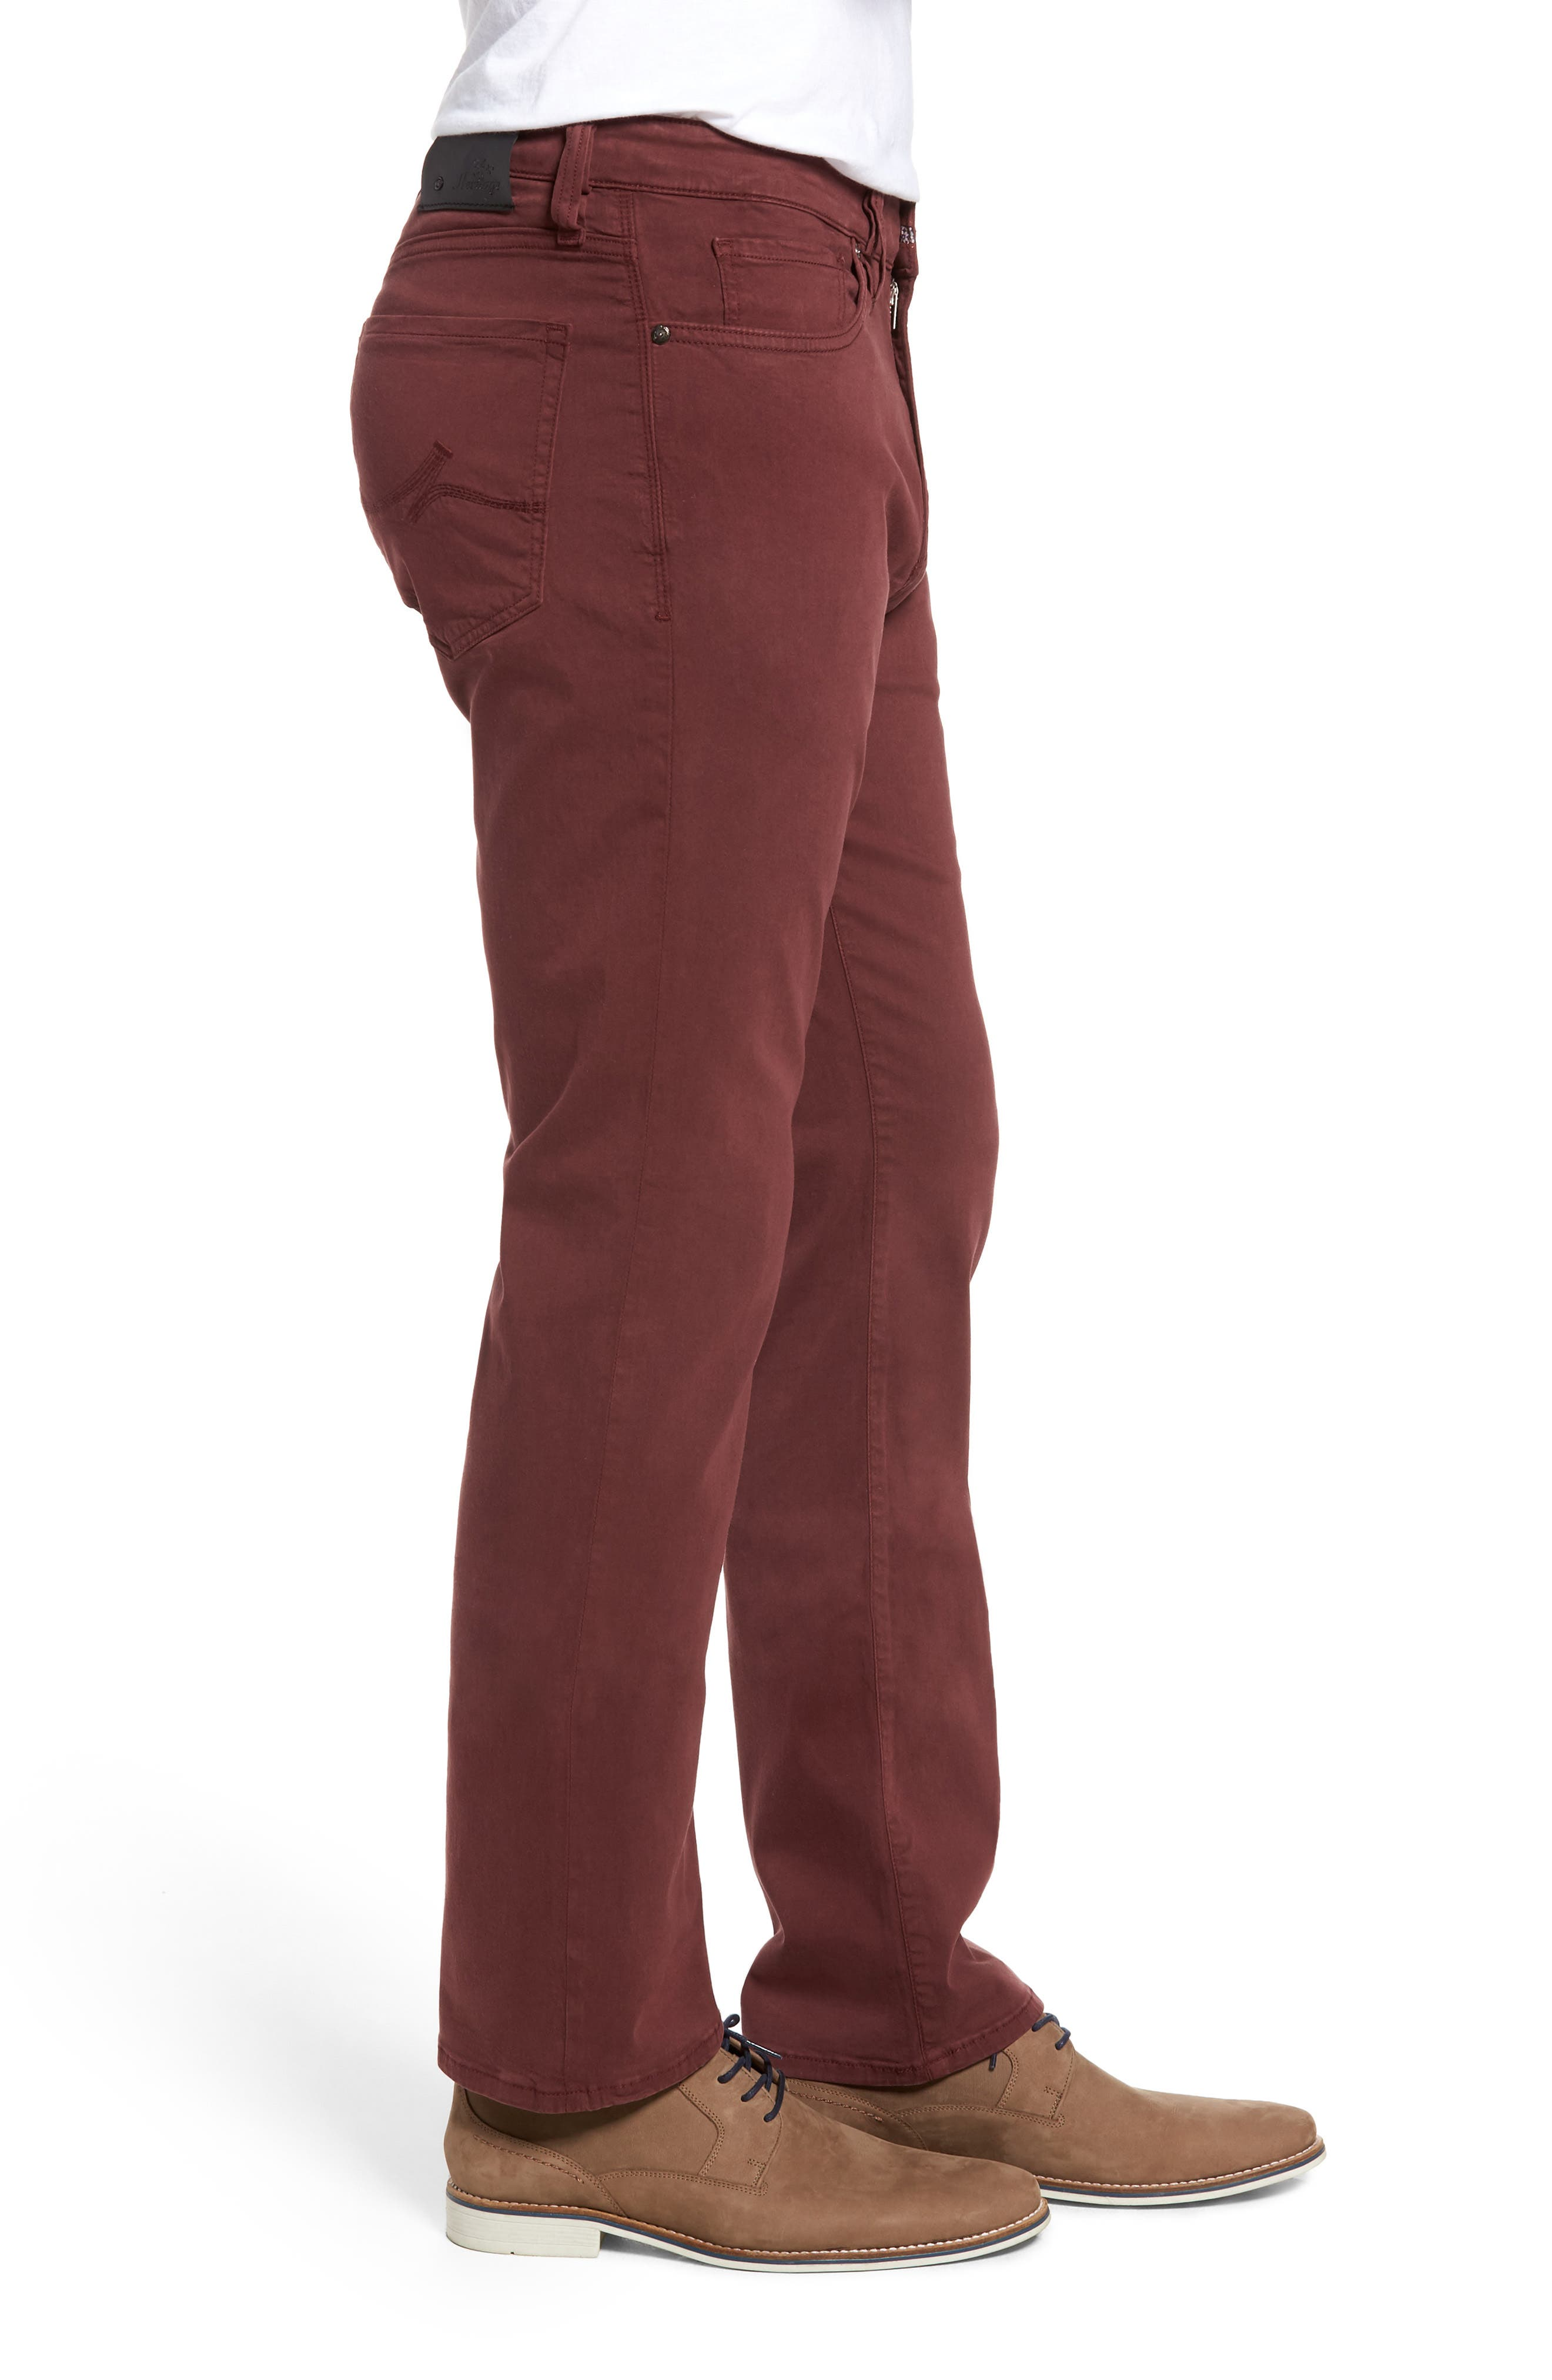 Charisma Relaxed Fit Pants,                             Alternate thumbnail 3, color,                             BORDEAUX TWILL